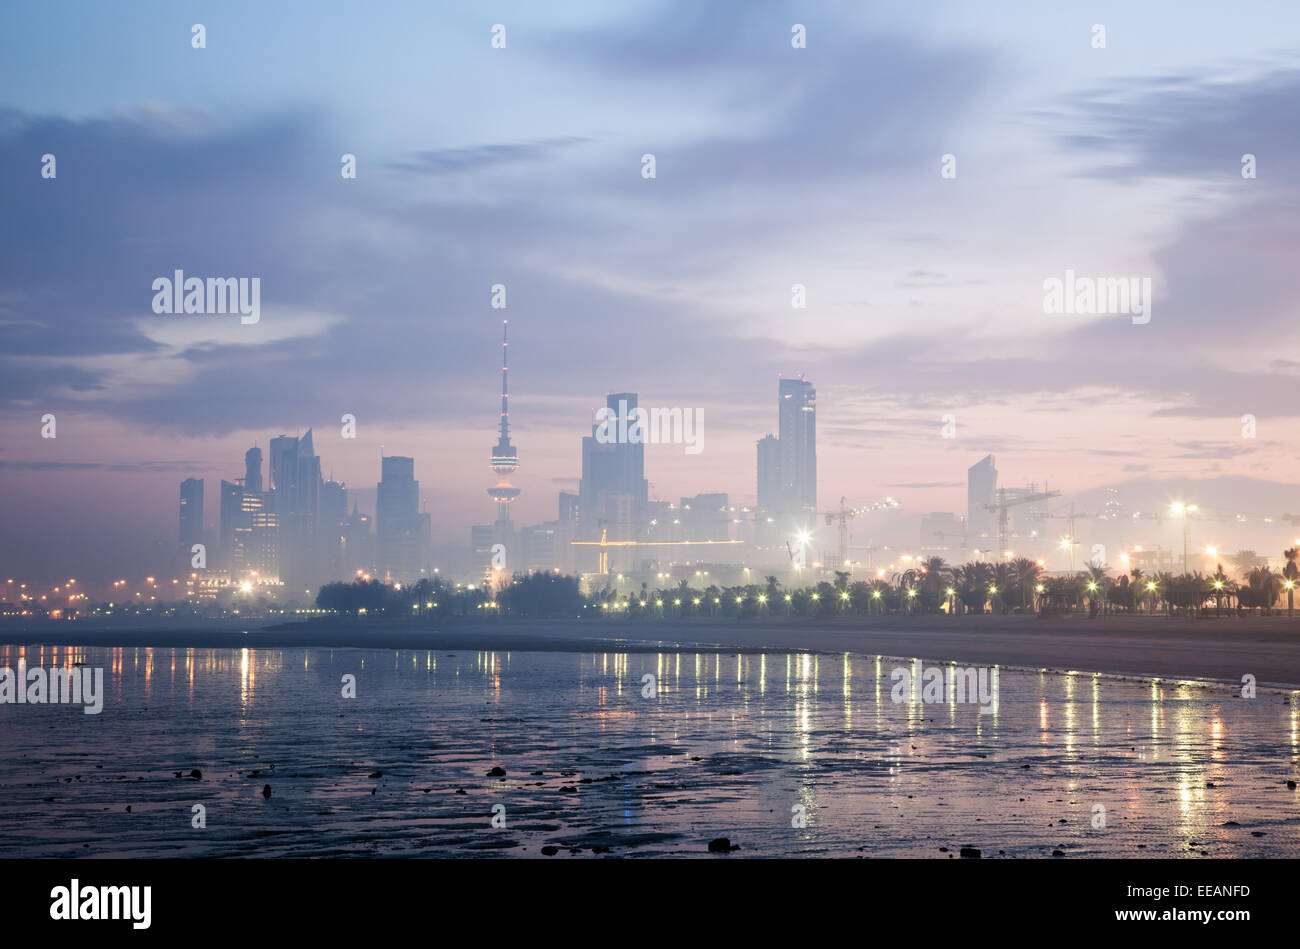 Skyline of Kuwait City - Stock Image